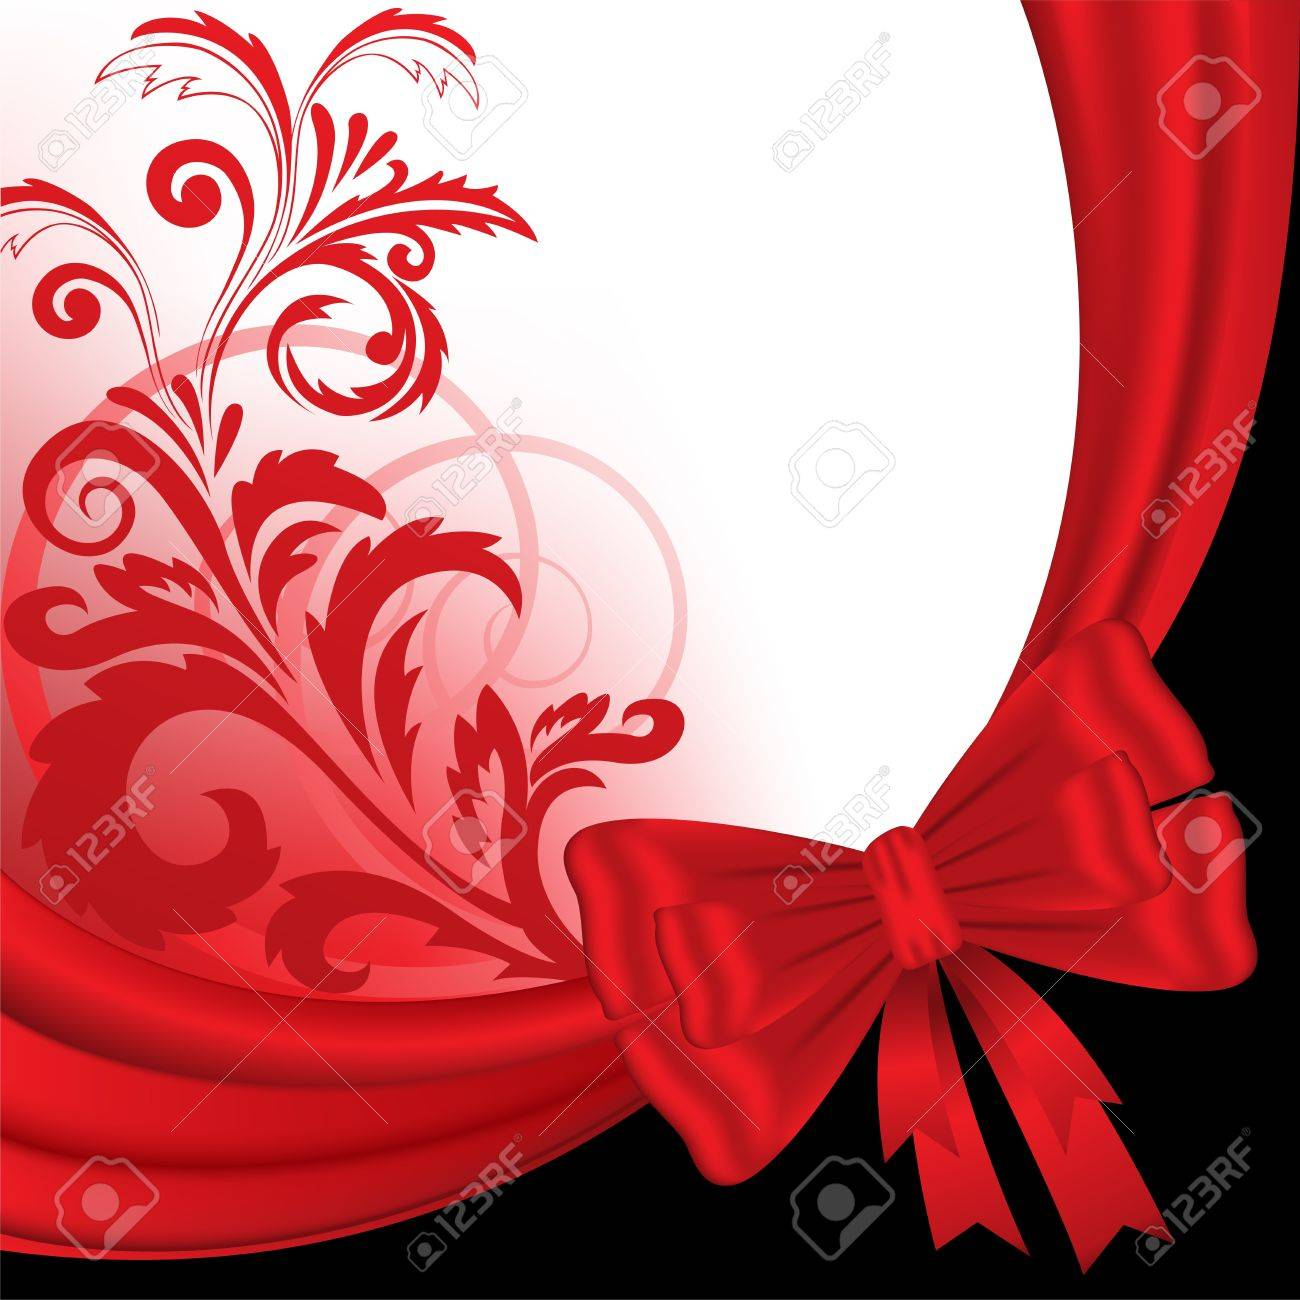 abstract black and red background with a silk ribbon and floral ornaments - 13231986